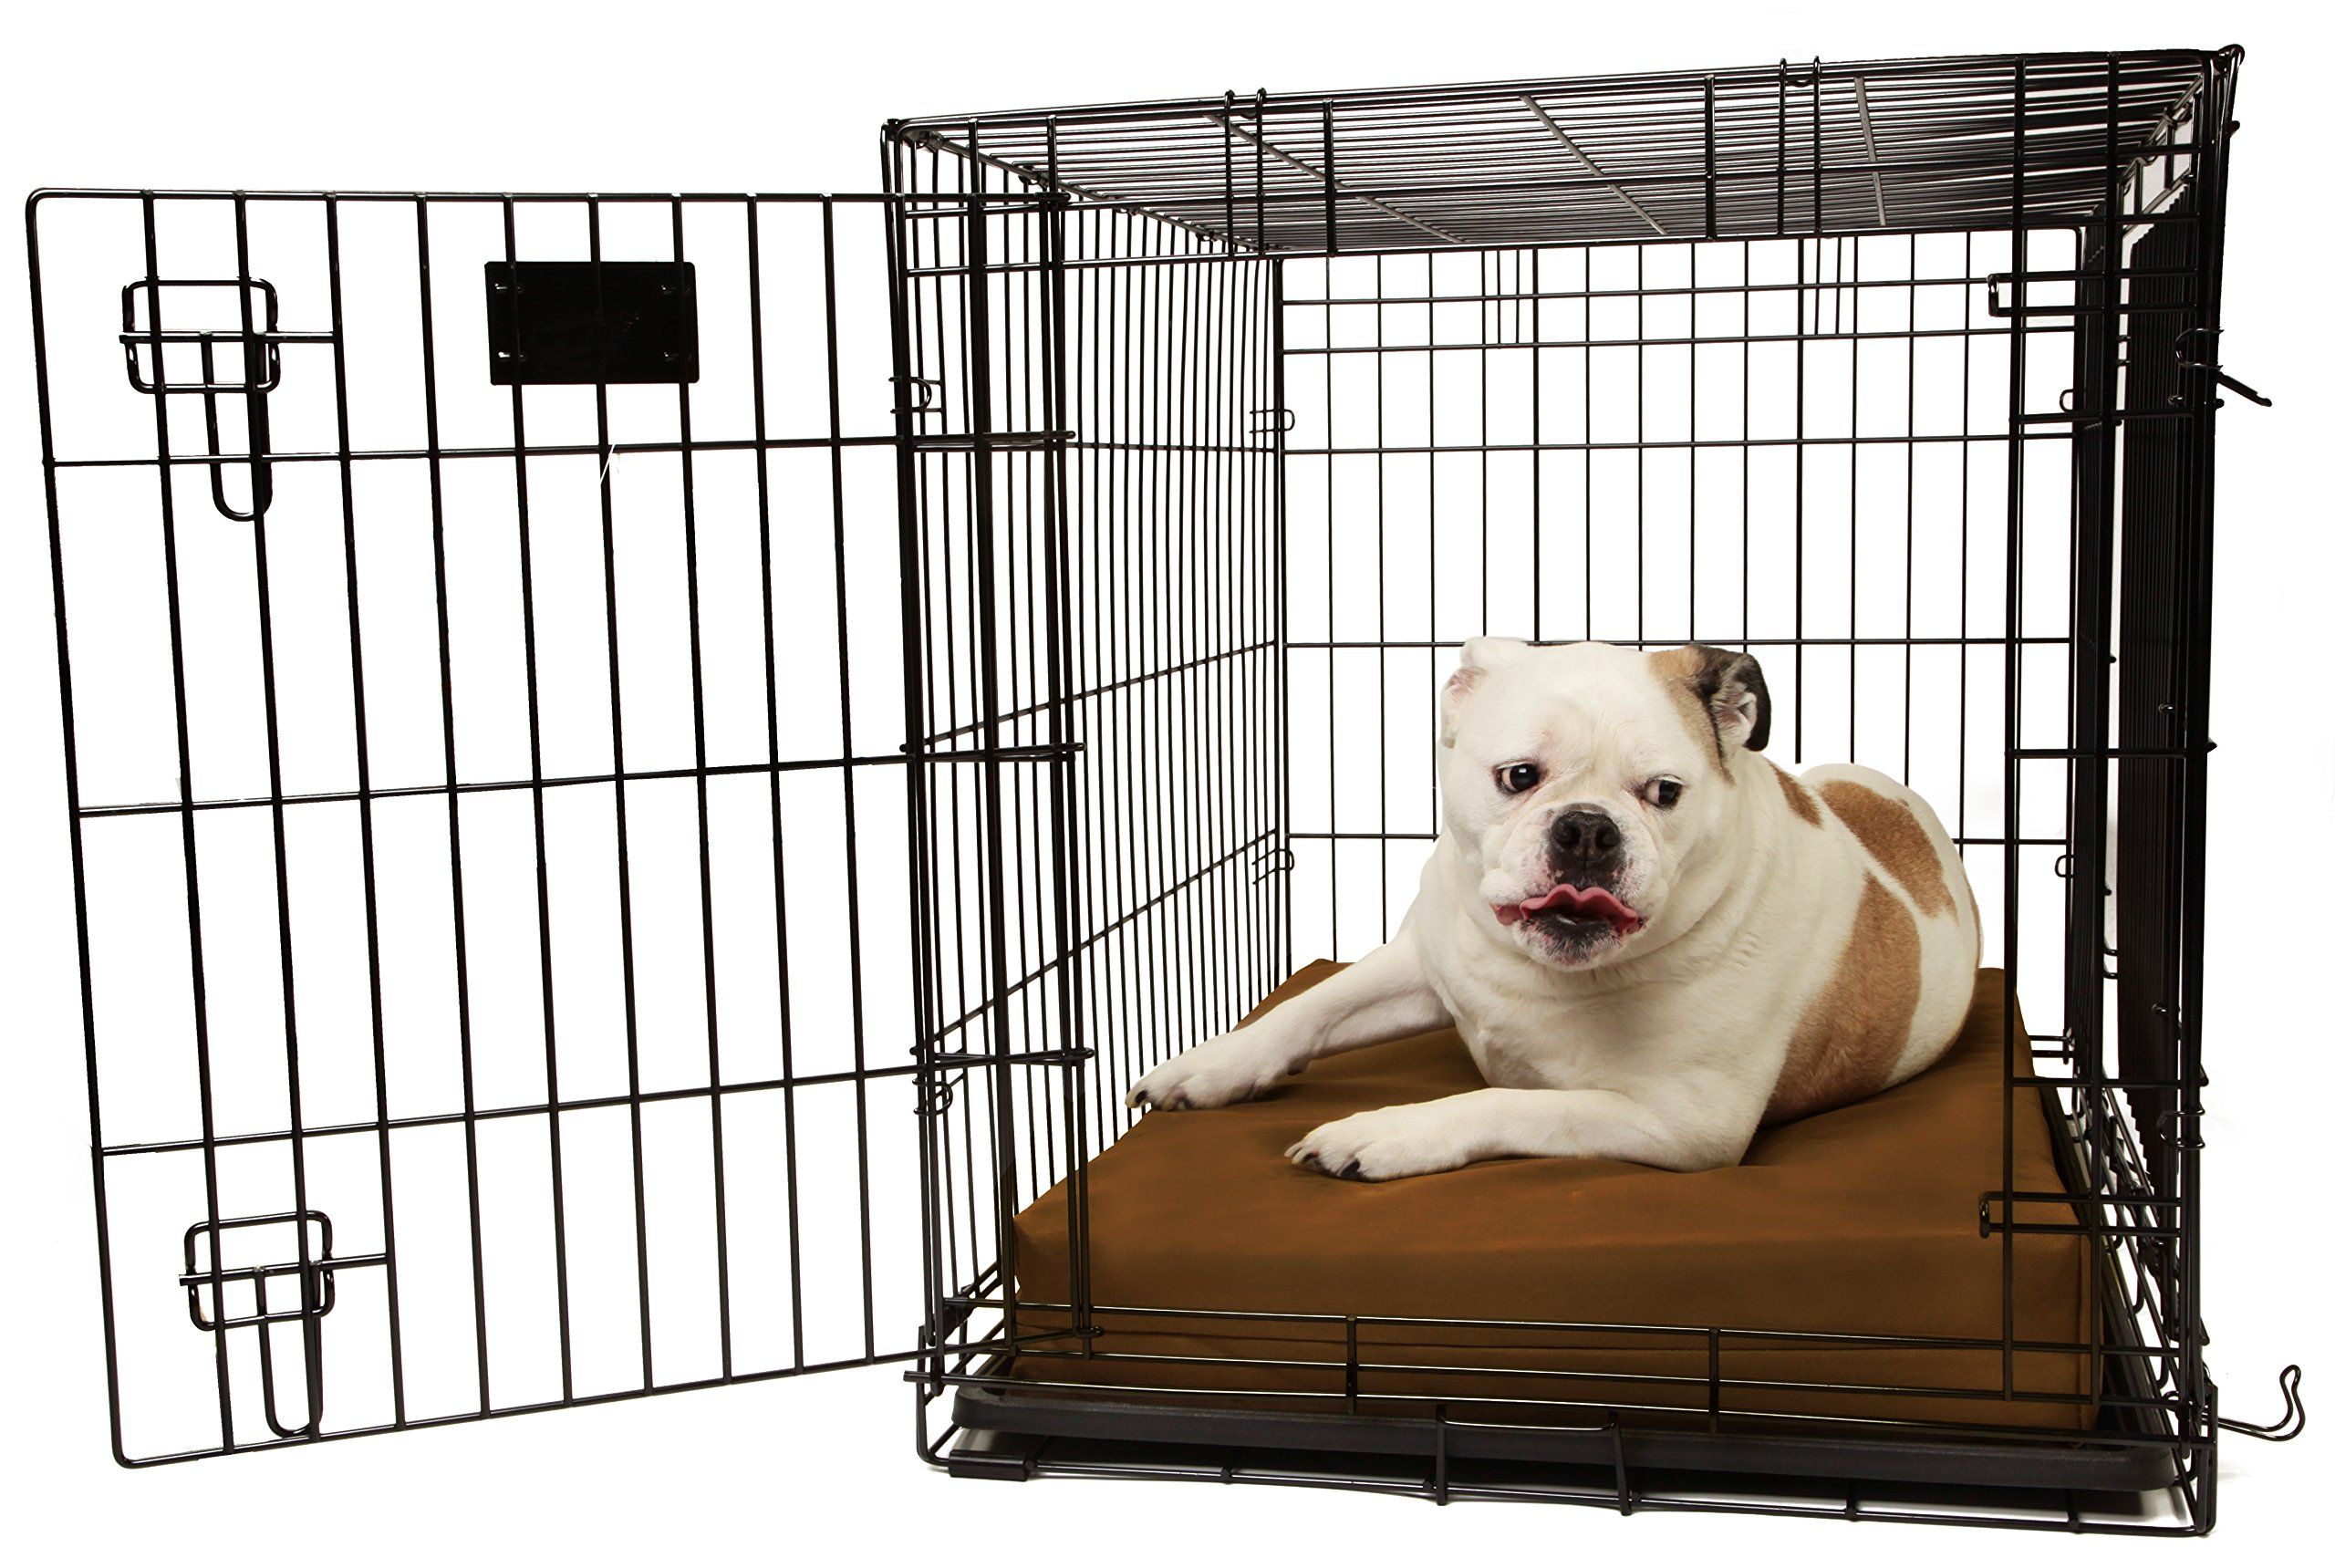 Big Barker Orthopedic 4'' Dog Crate Pad 36'' x 24''. Waterproof & Tear Resistant, Washable Cover. Luxury Orthopedic Support Foam inside. Made in USA. Sized to perfectly fit inside a 36'' x 24'' crate. by Big Barker